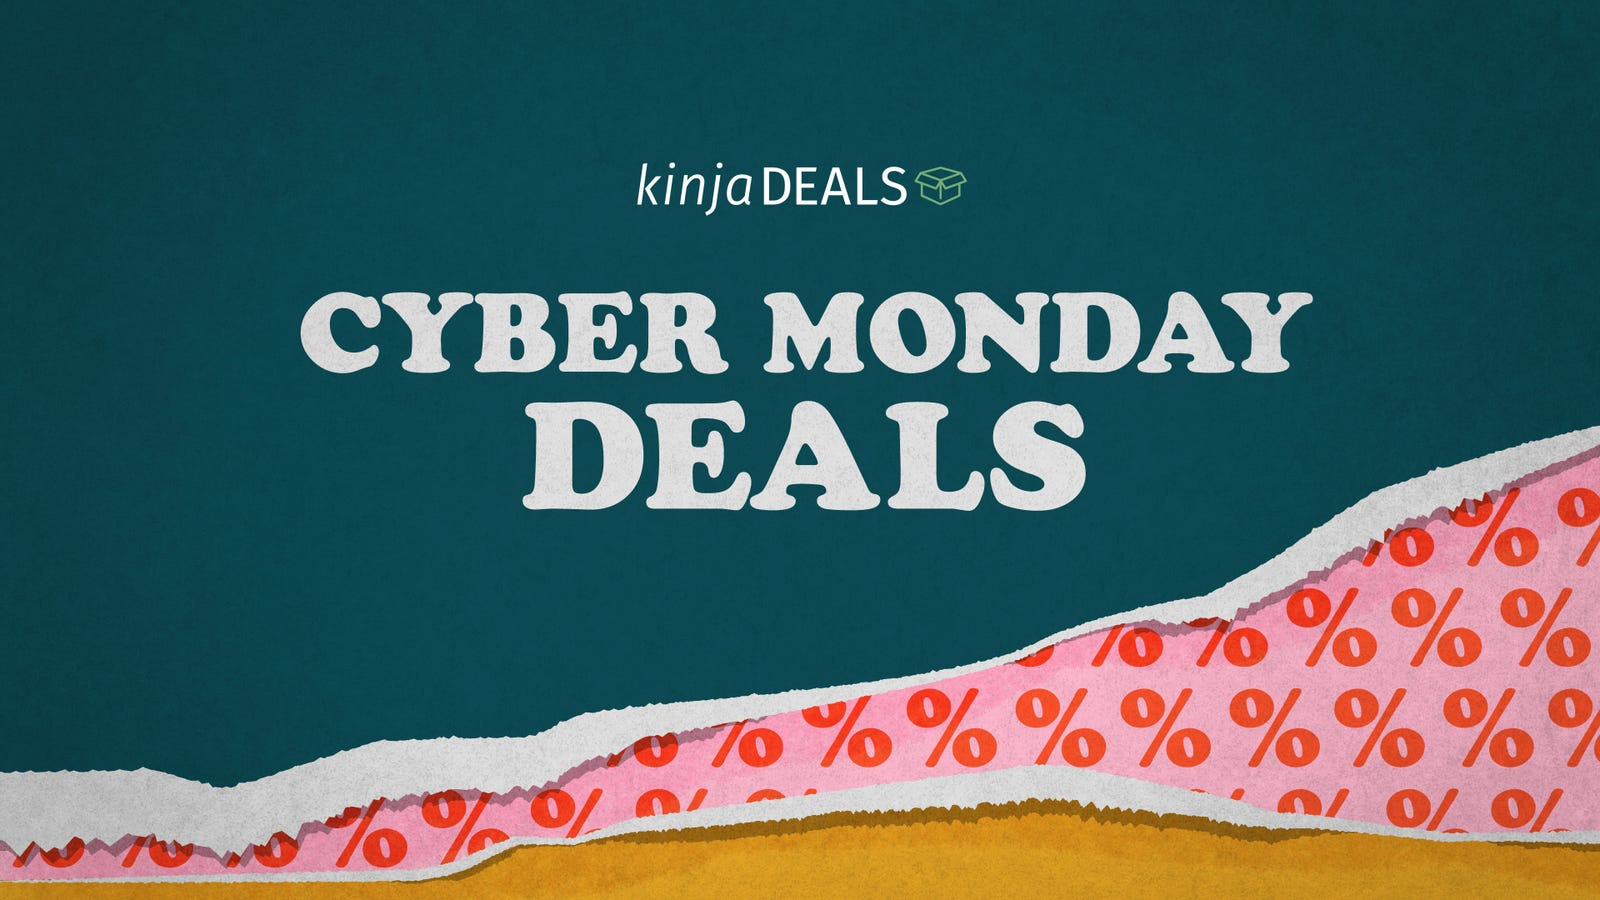 The Best Cyber Monday Deals - 2019